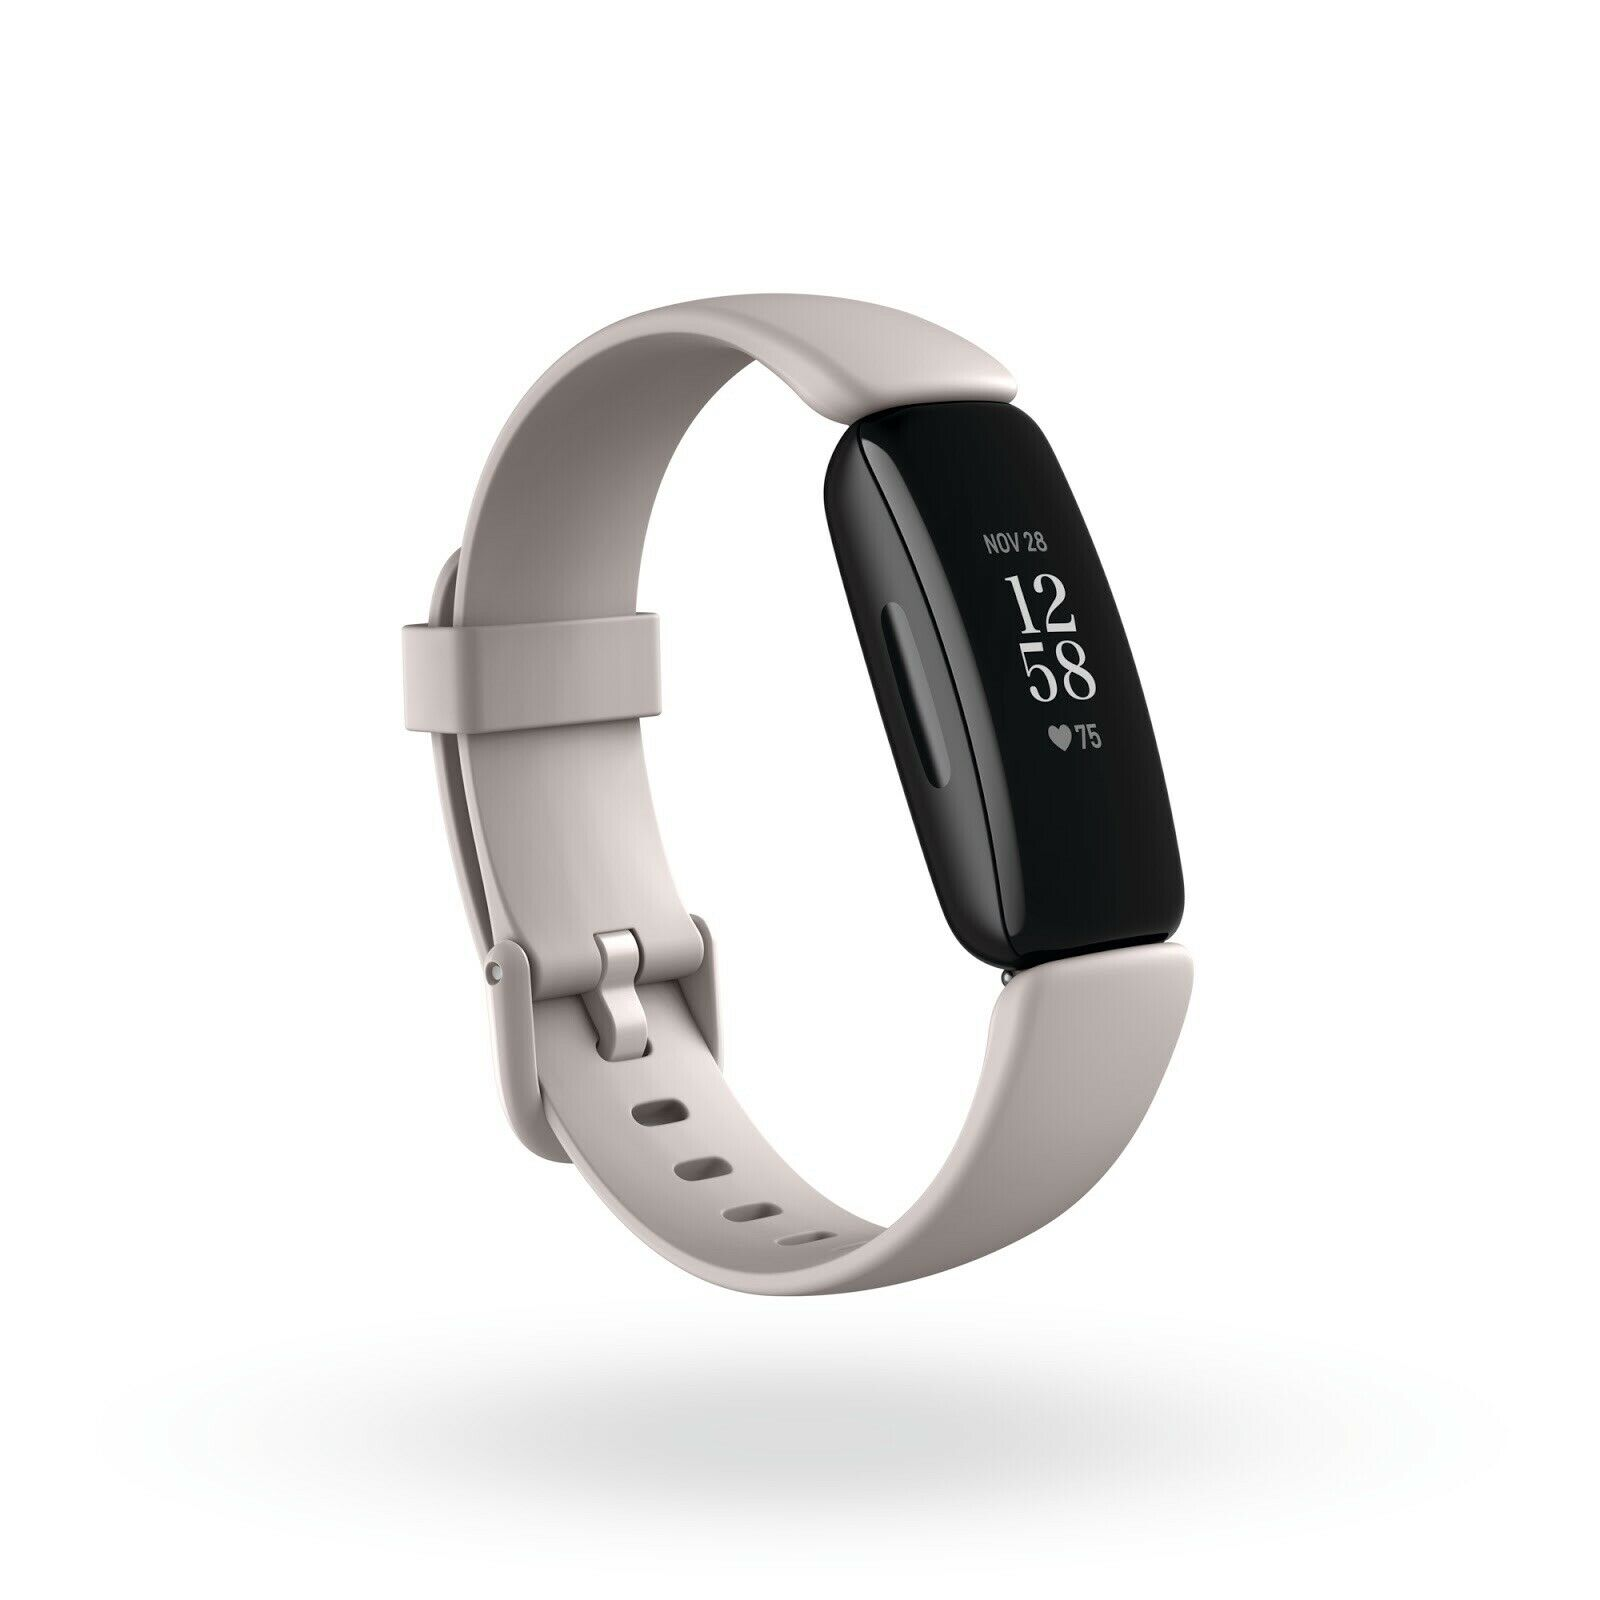 Fitbit Inspire 2 Activity Tracker - Lunar White Fitness Tracker + Heart Rate